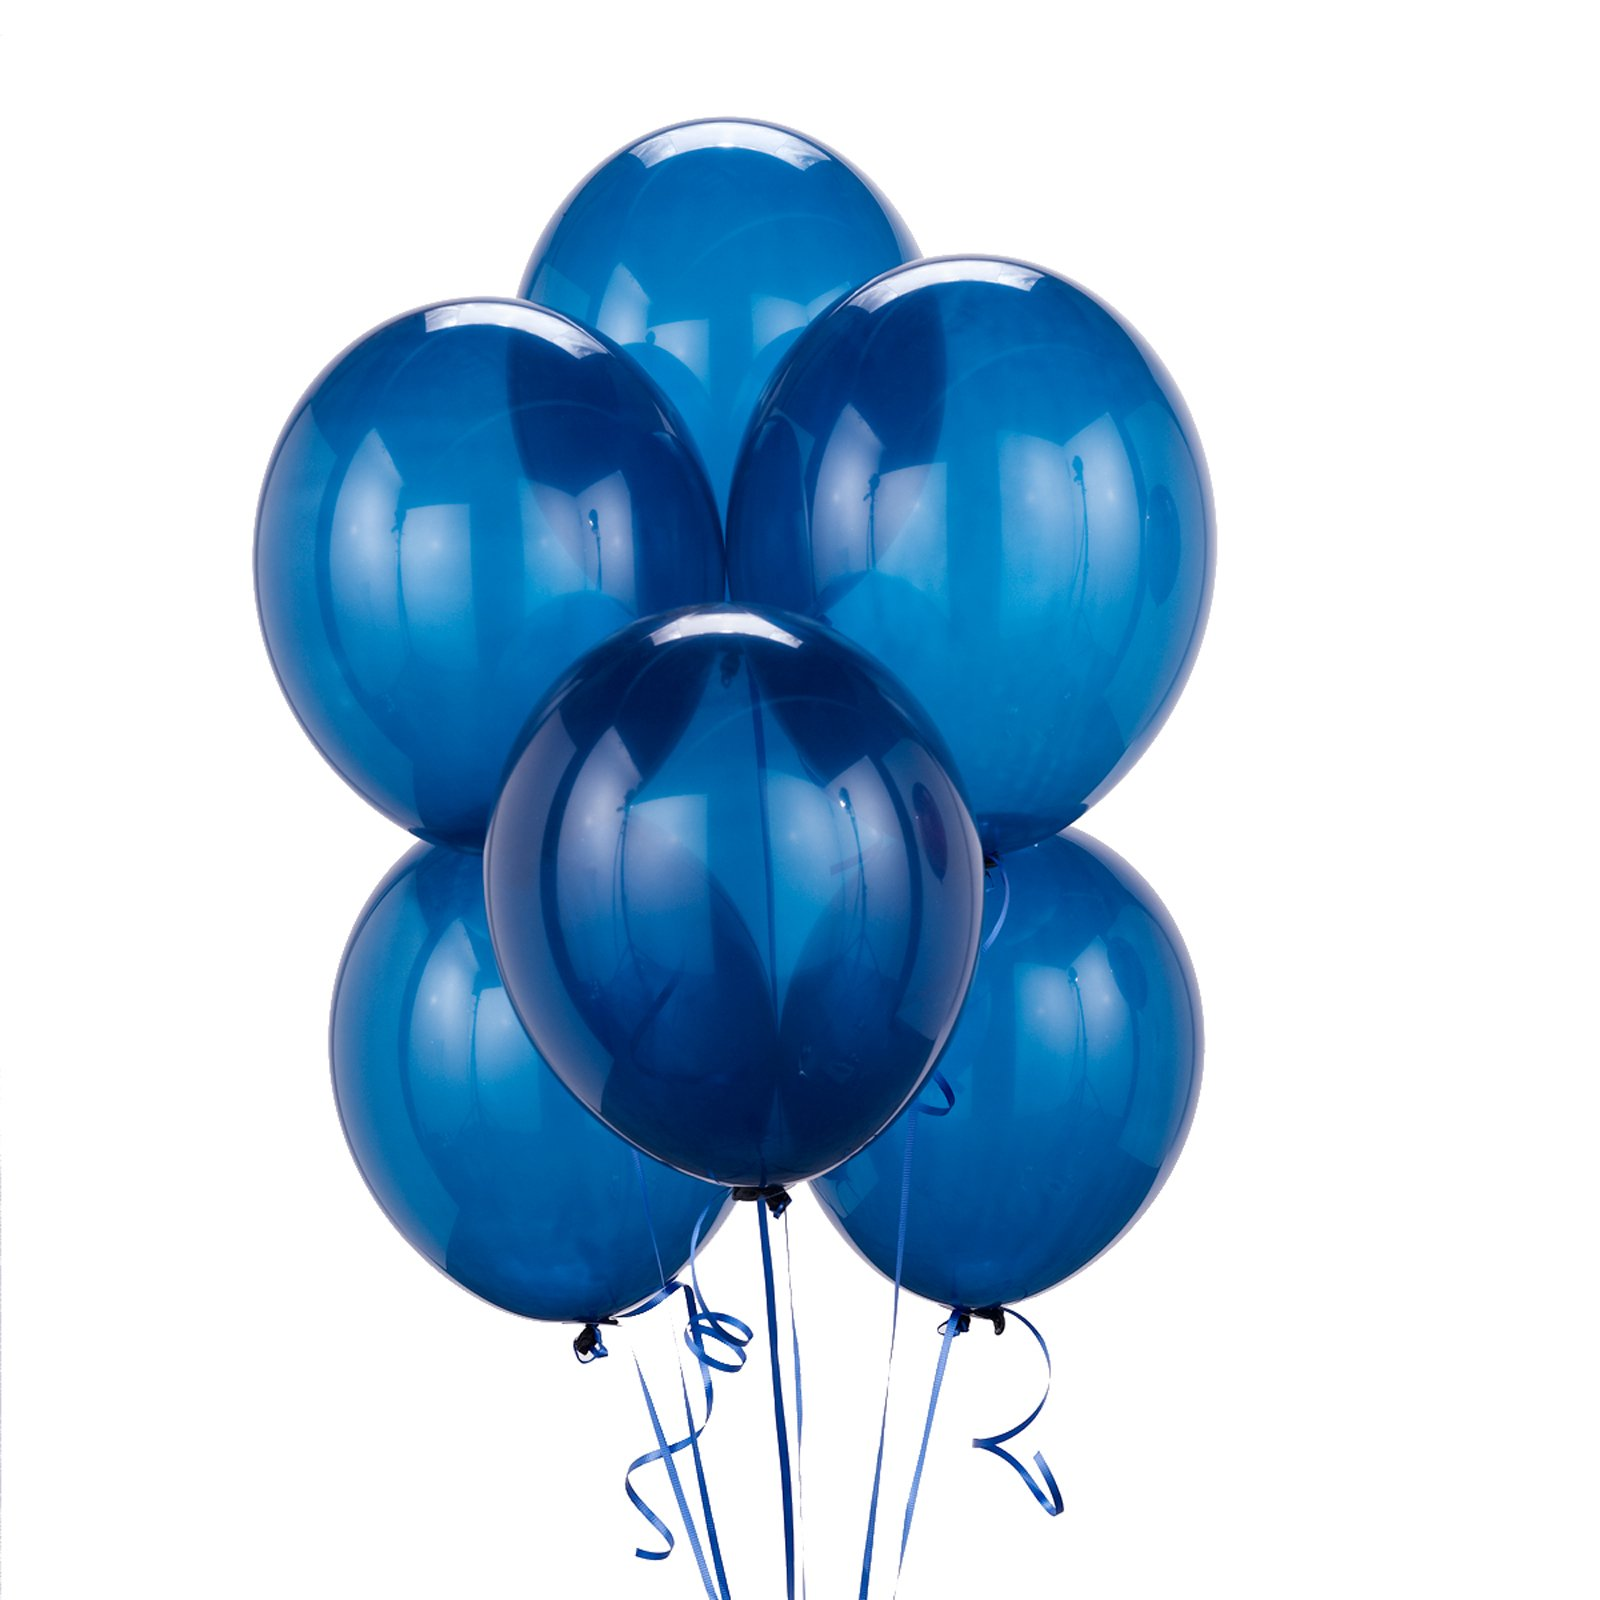 Sponsored Balloon Release in Memory of Philip Millar